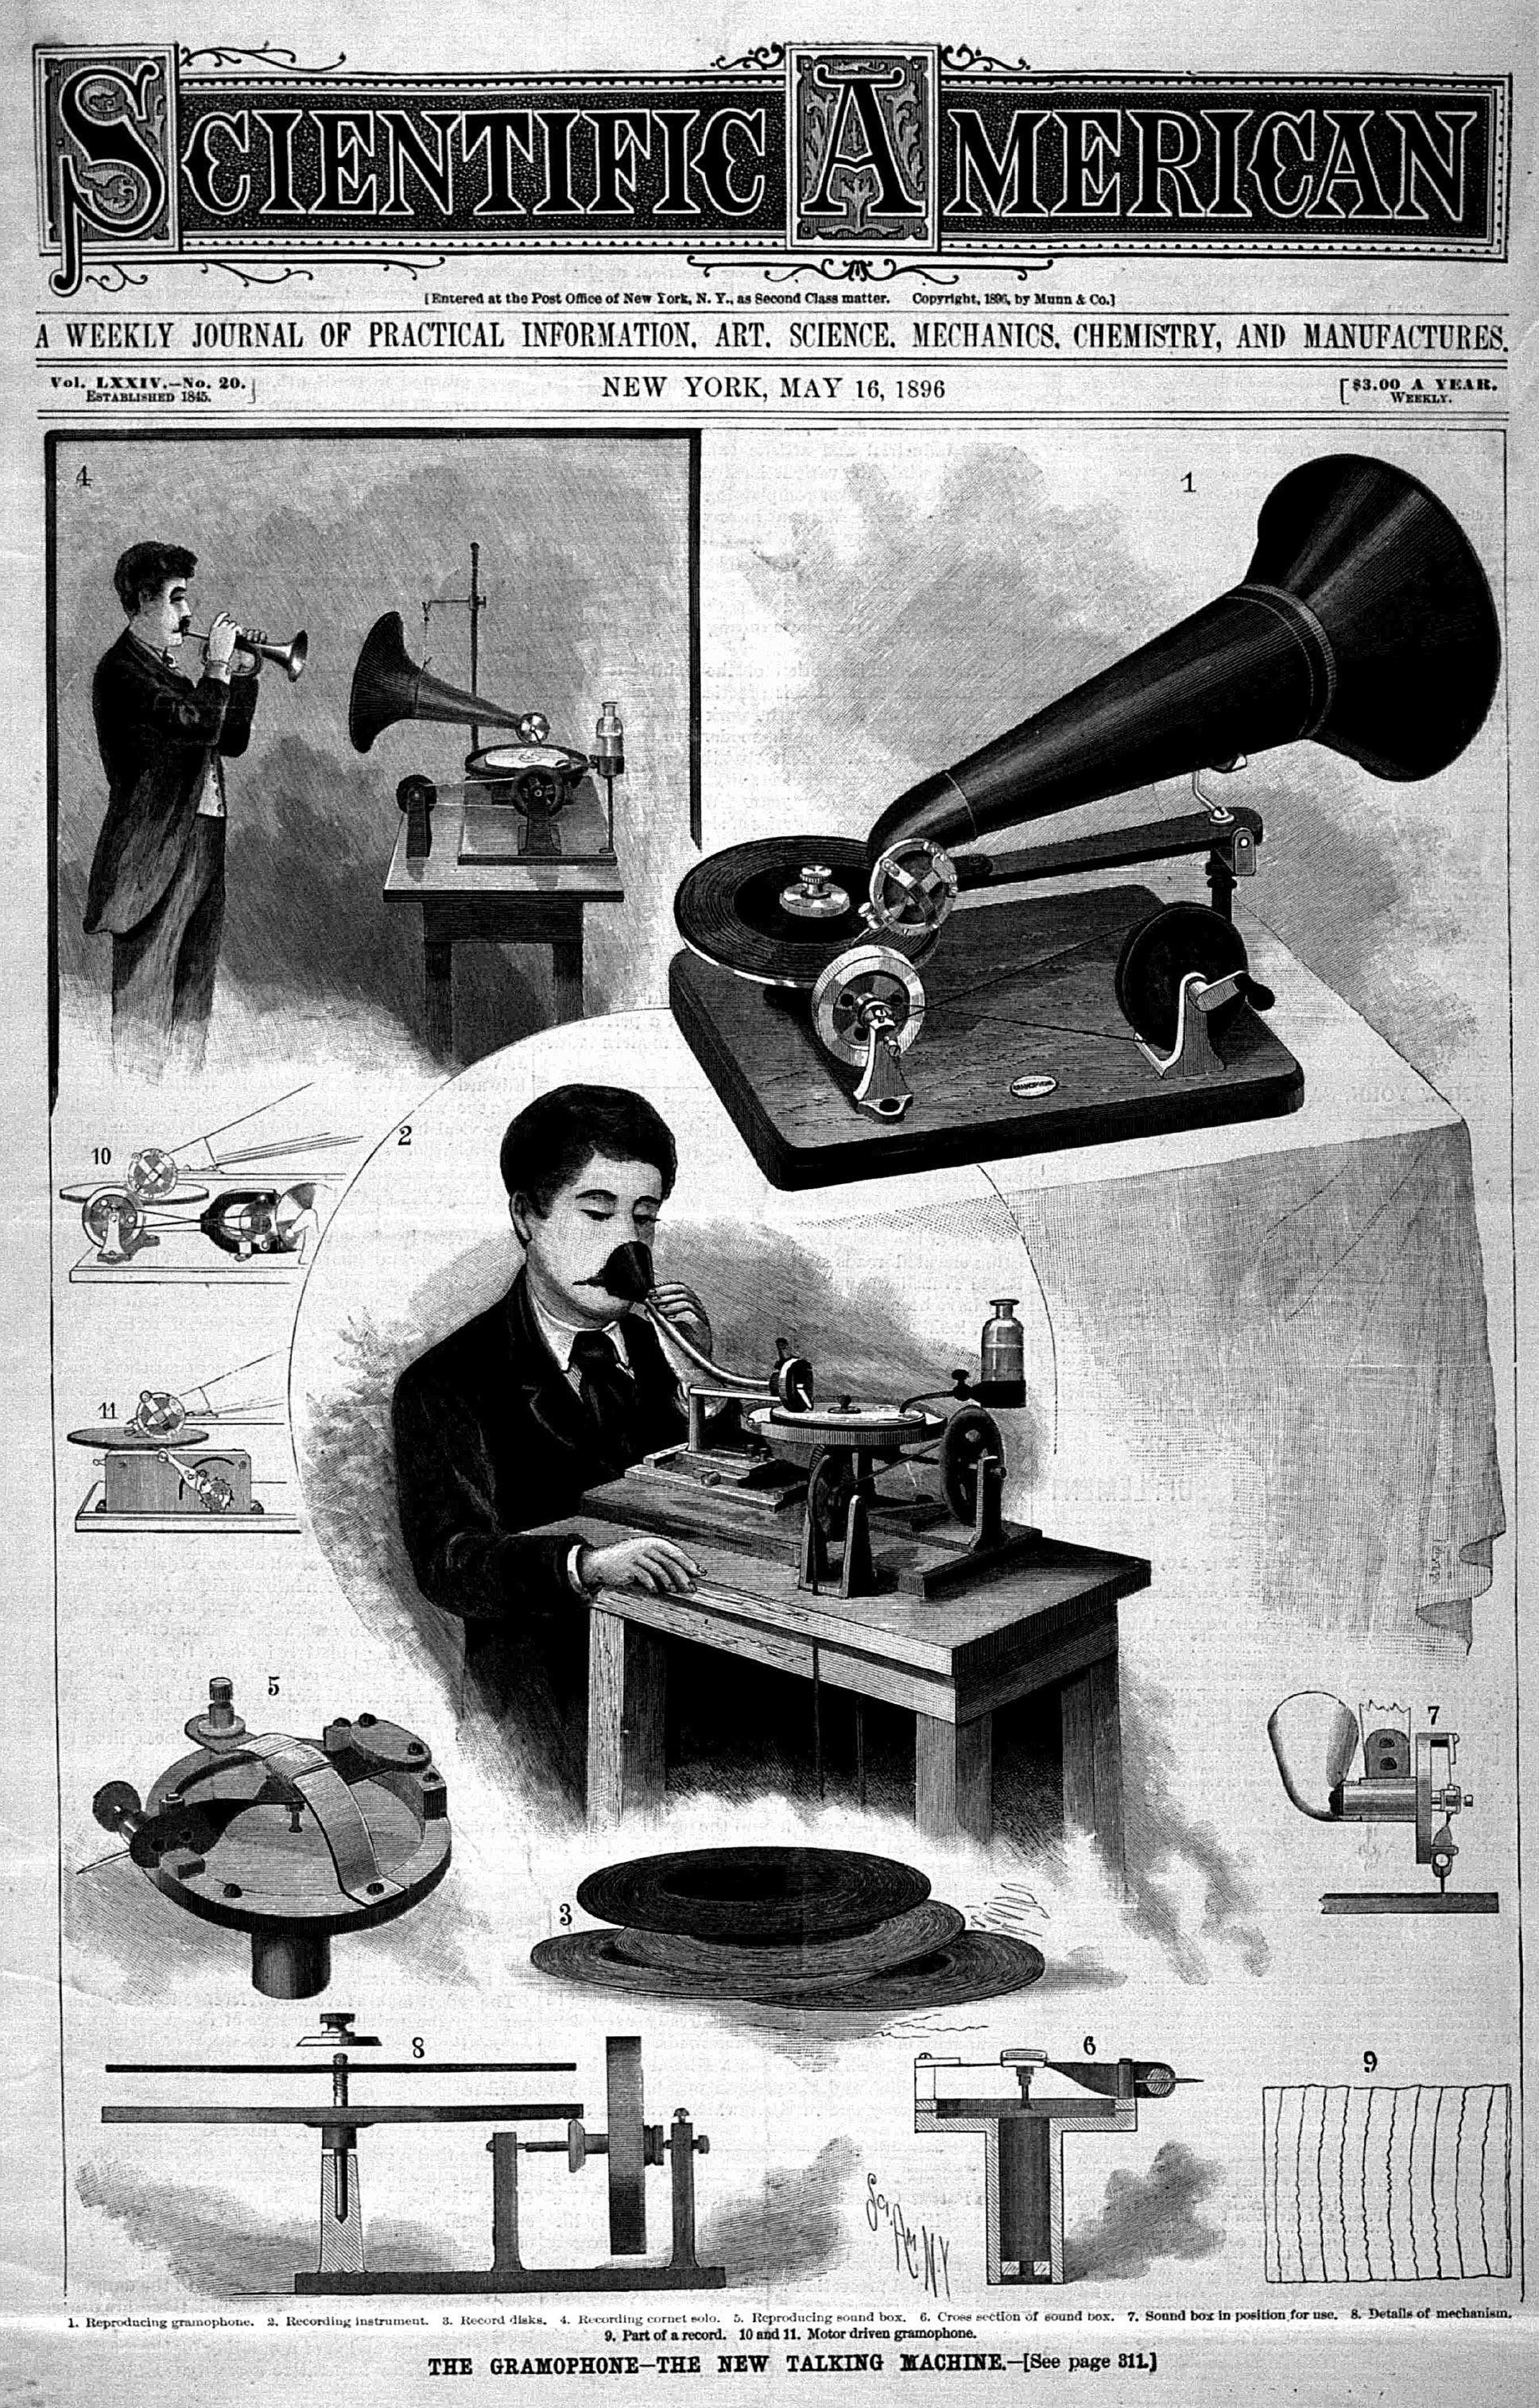 Scientific American Cover 1896